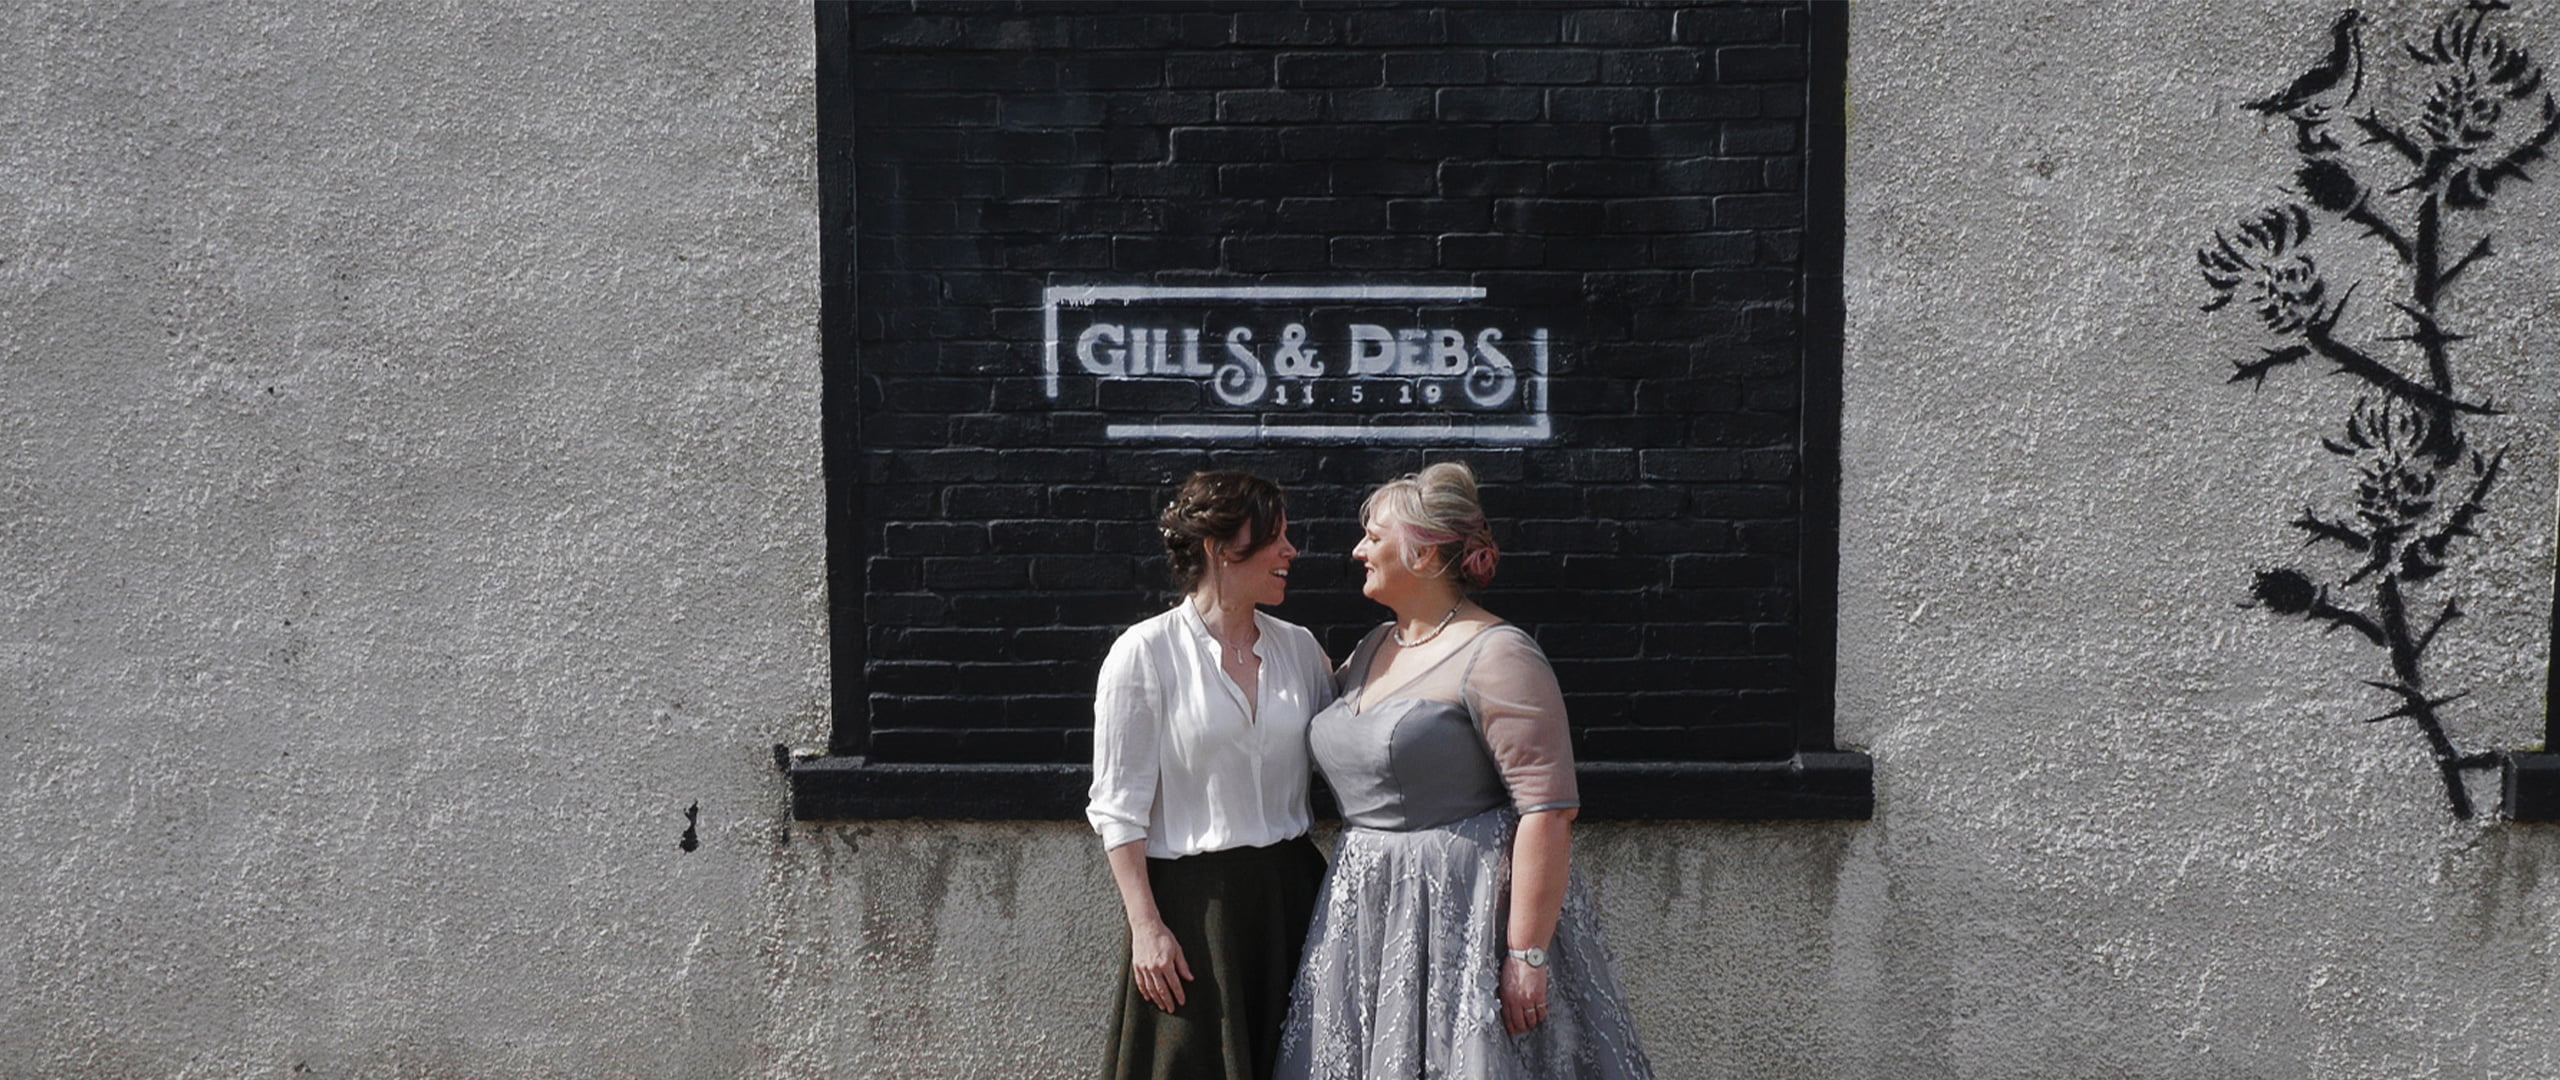 edinburgh alternative wedding